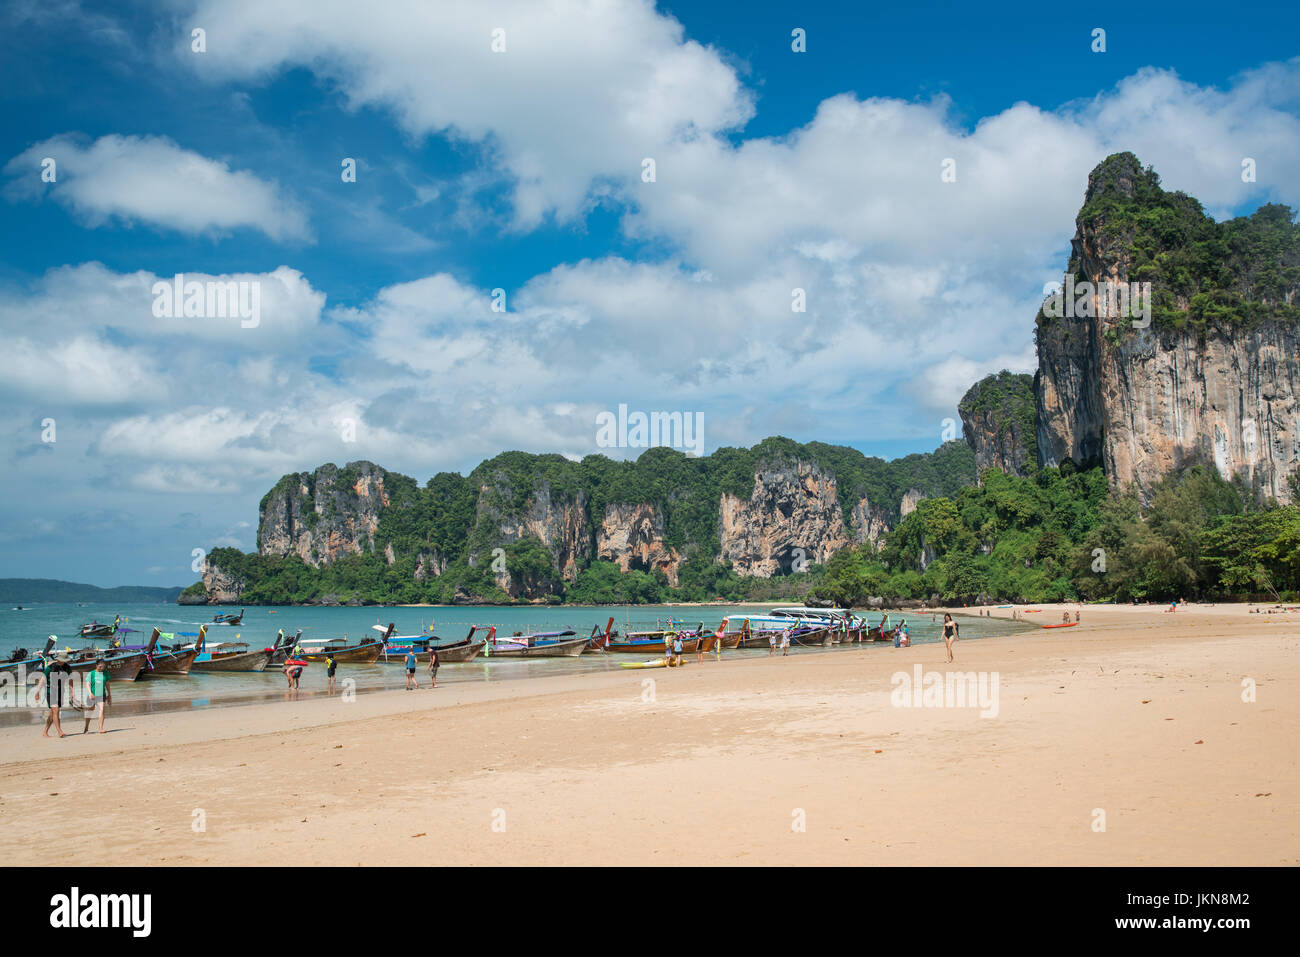 KRABI, THAILAND - DECEMBER 5 : Colorful long tail boats at Railay beach on a background of blue sky and azure sea - Stock Image